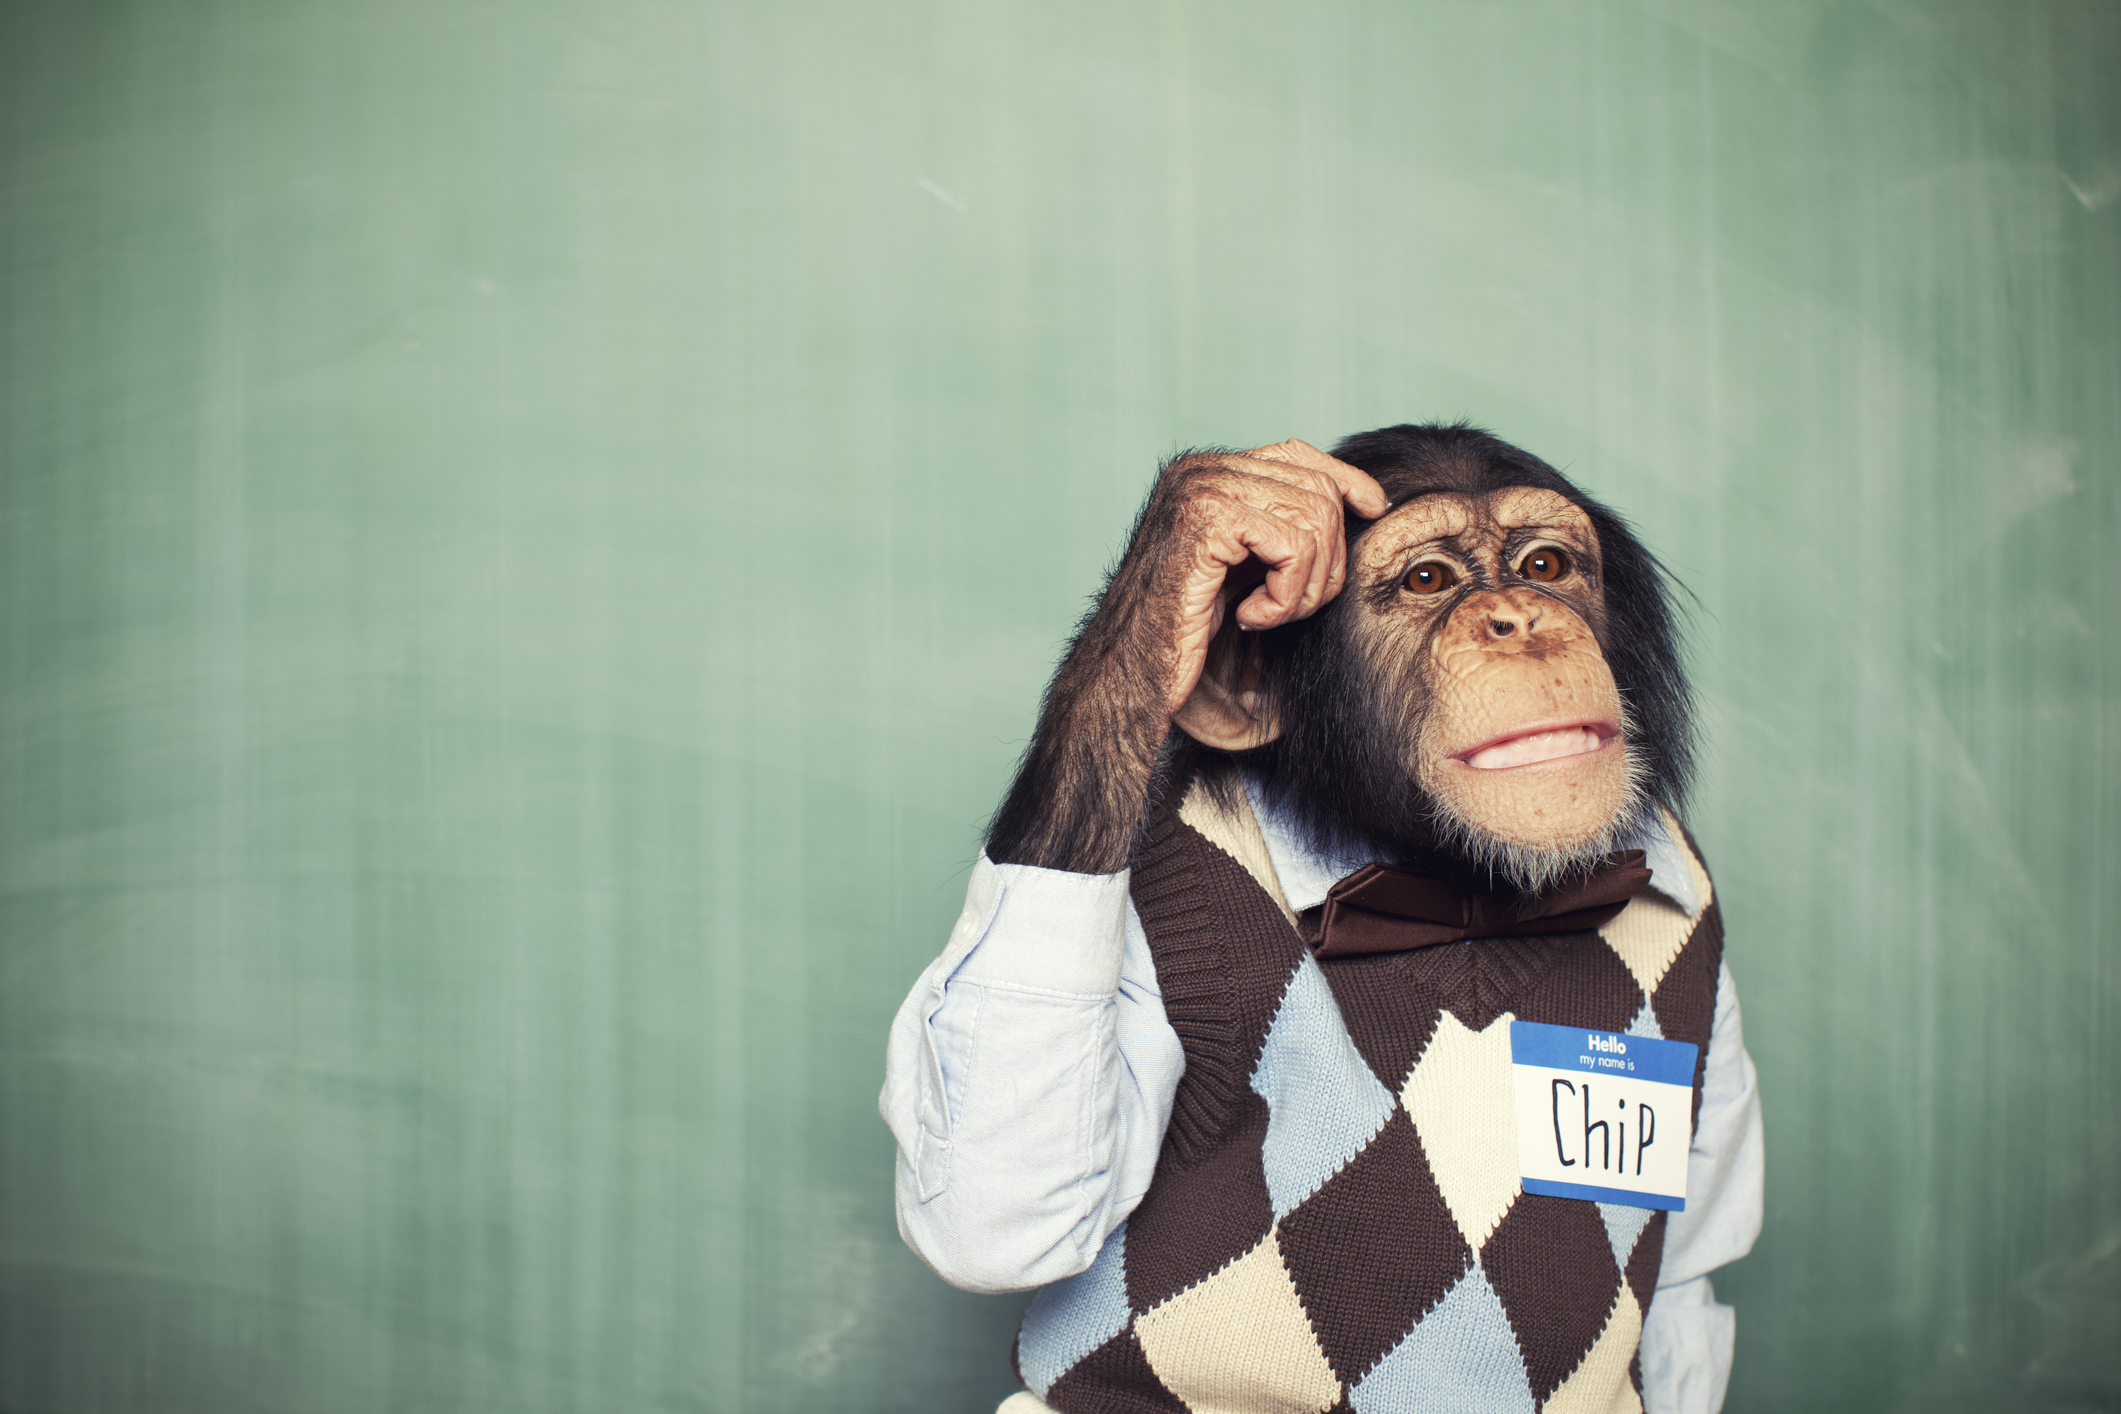 This nerdy chimpanzee is thinking really hard for a solution.